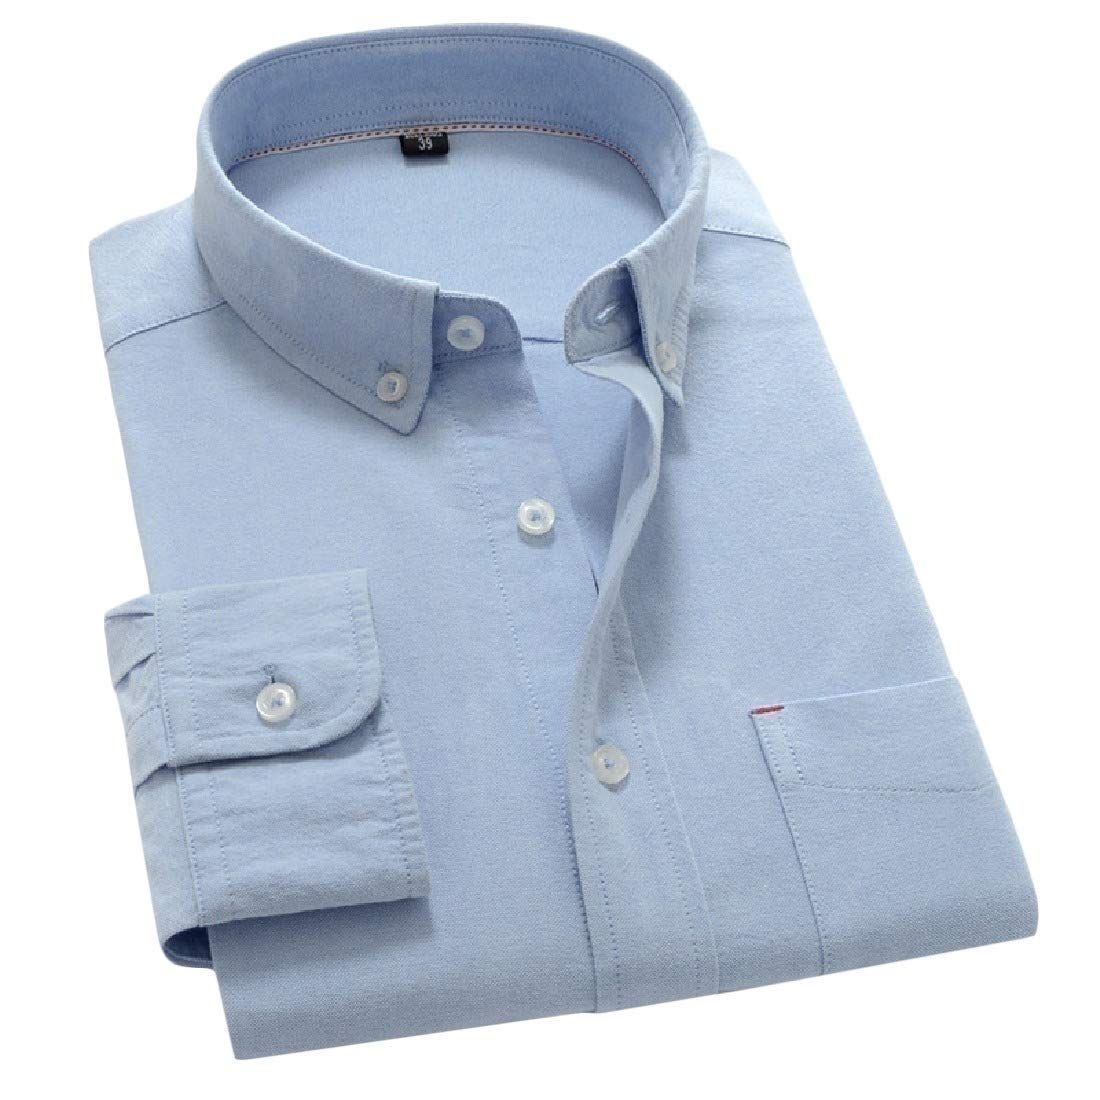 Mfasica Mens Oxford Oversize Pure Color Skinny Button Down Shirt